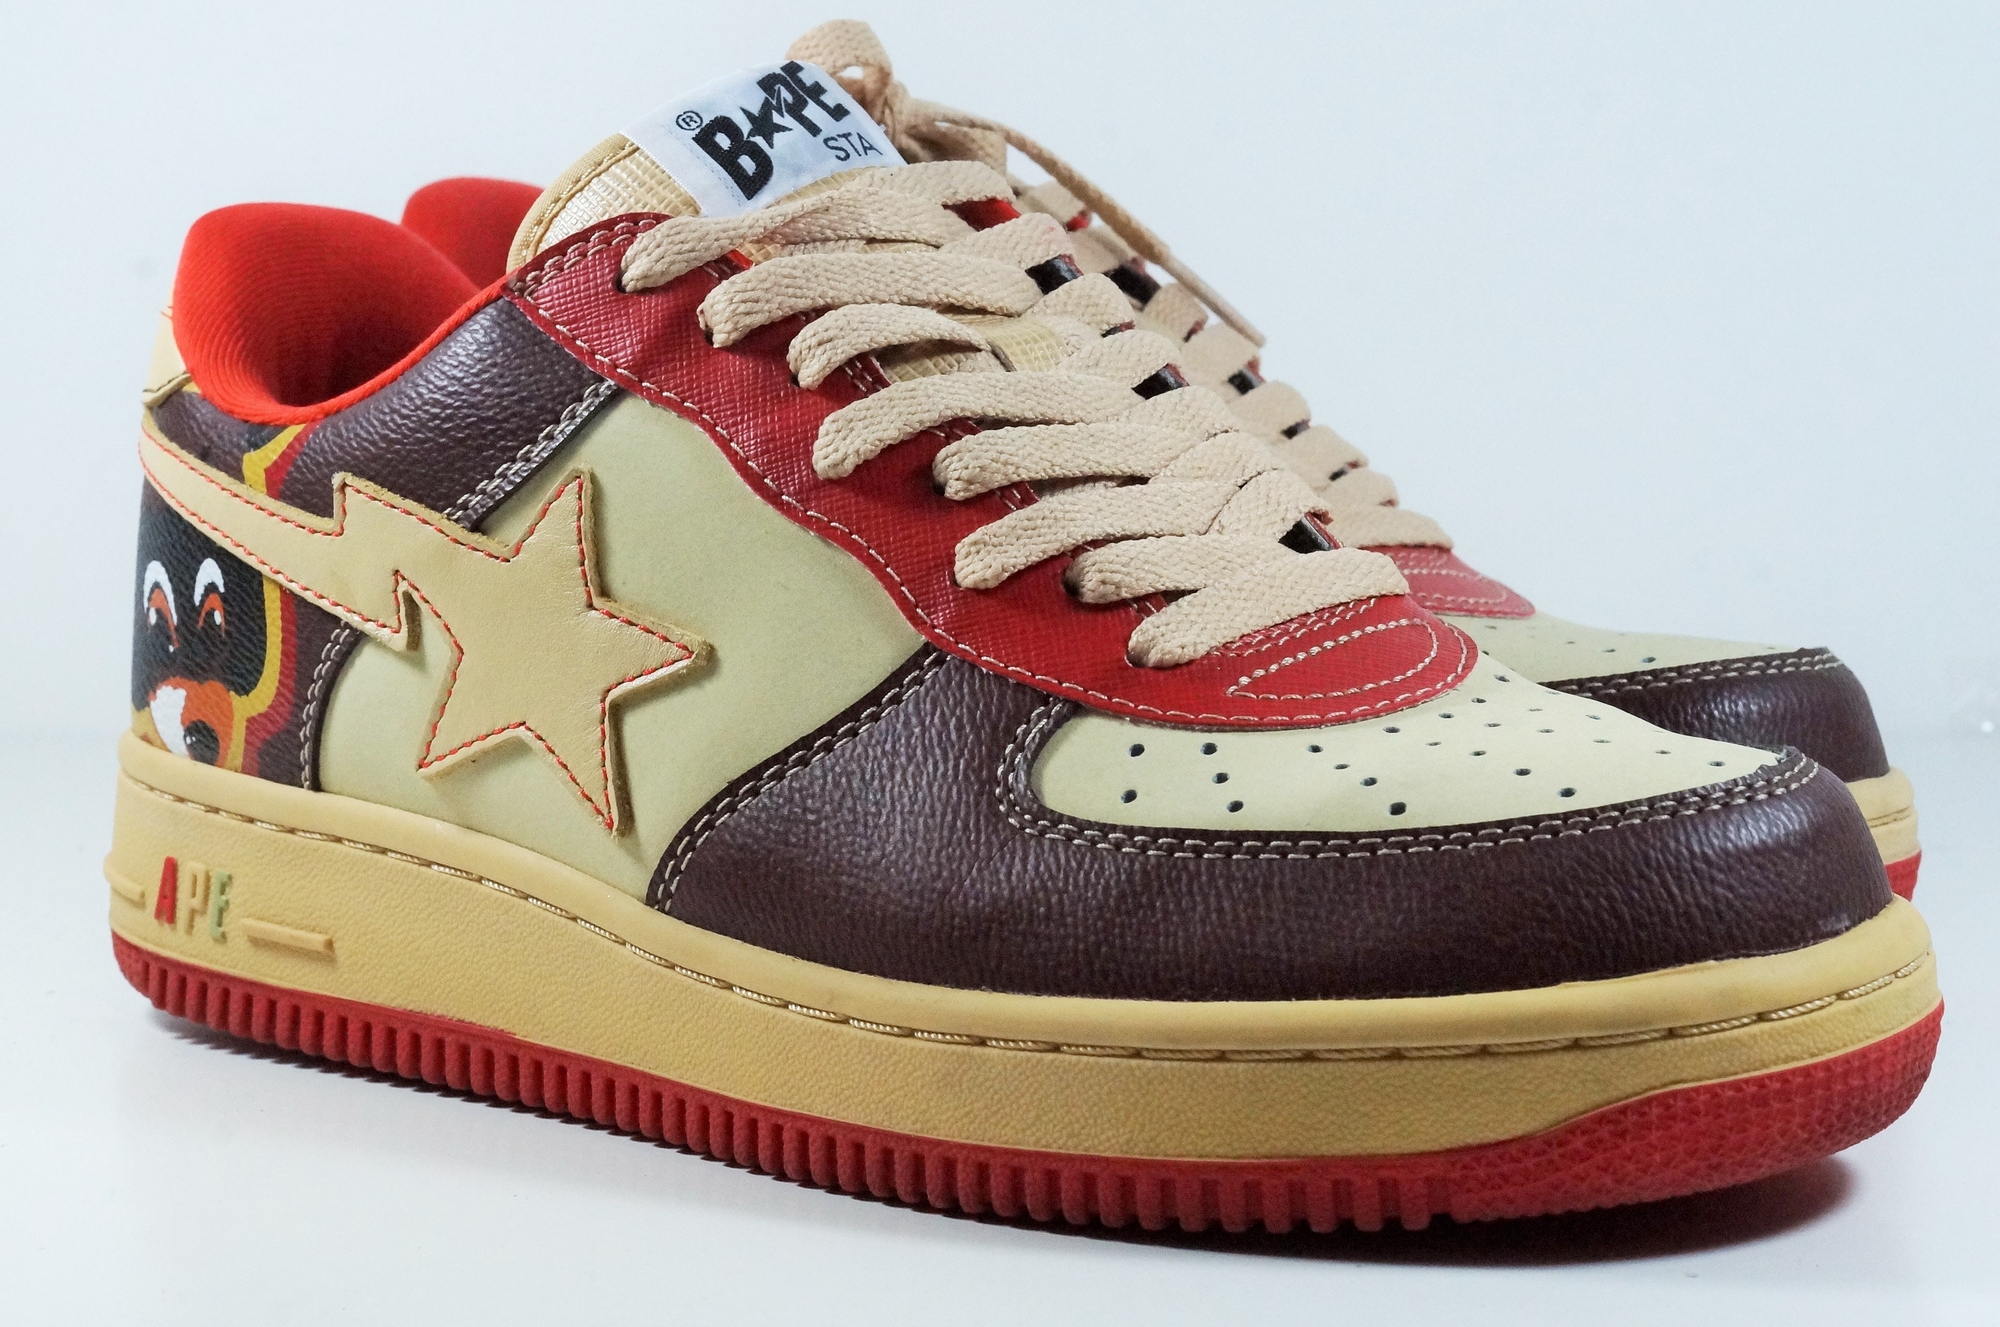 Bape Marvel Shoes | Bapesta | Ape Shoes